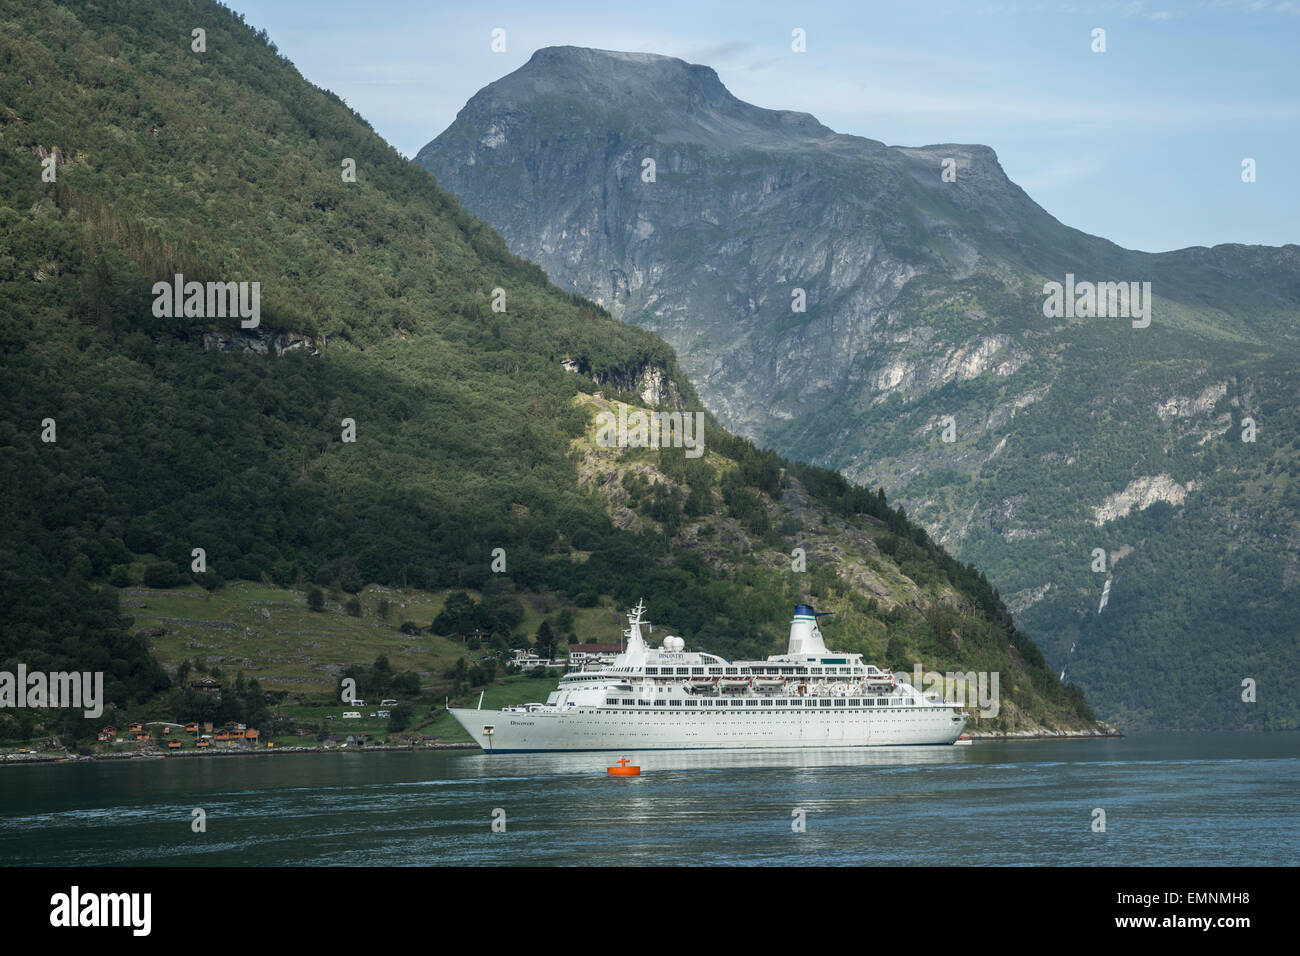 Cruise ship Discovery in Gerainger fjord Norway Stock Photo